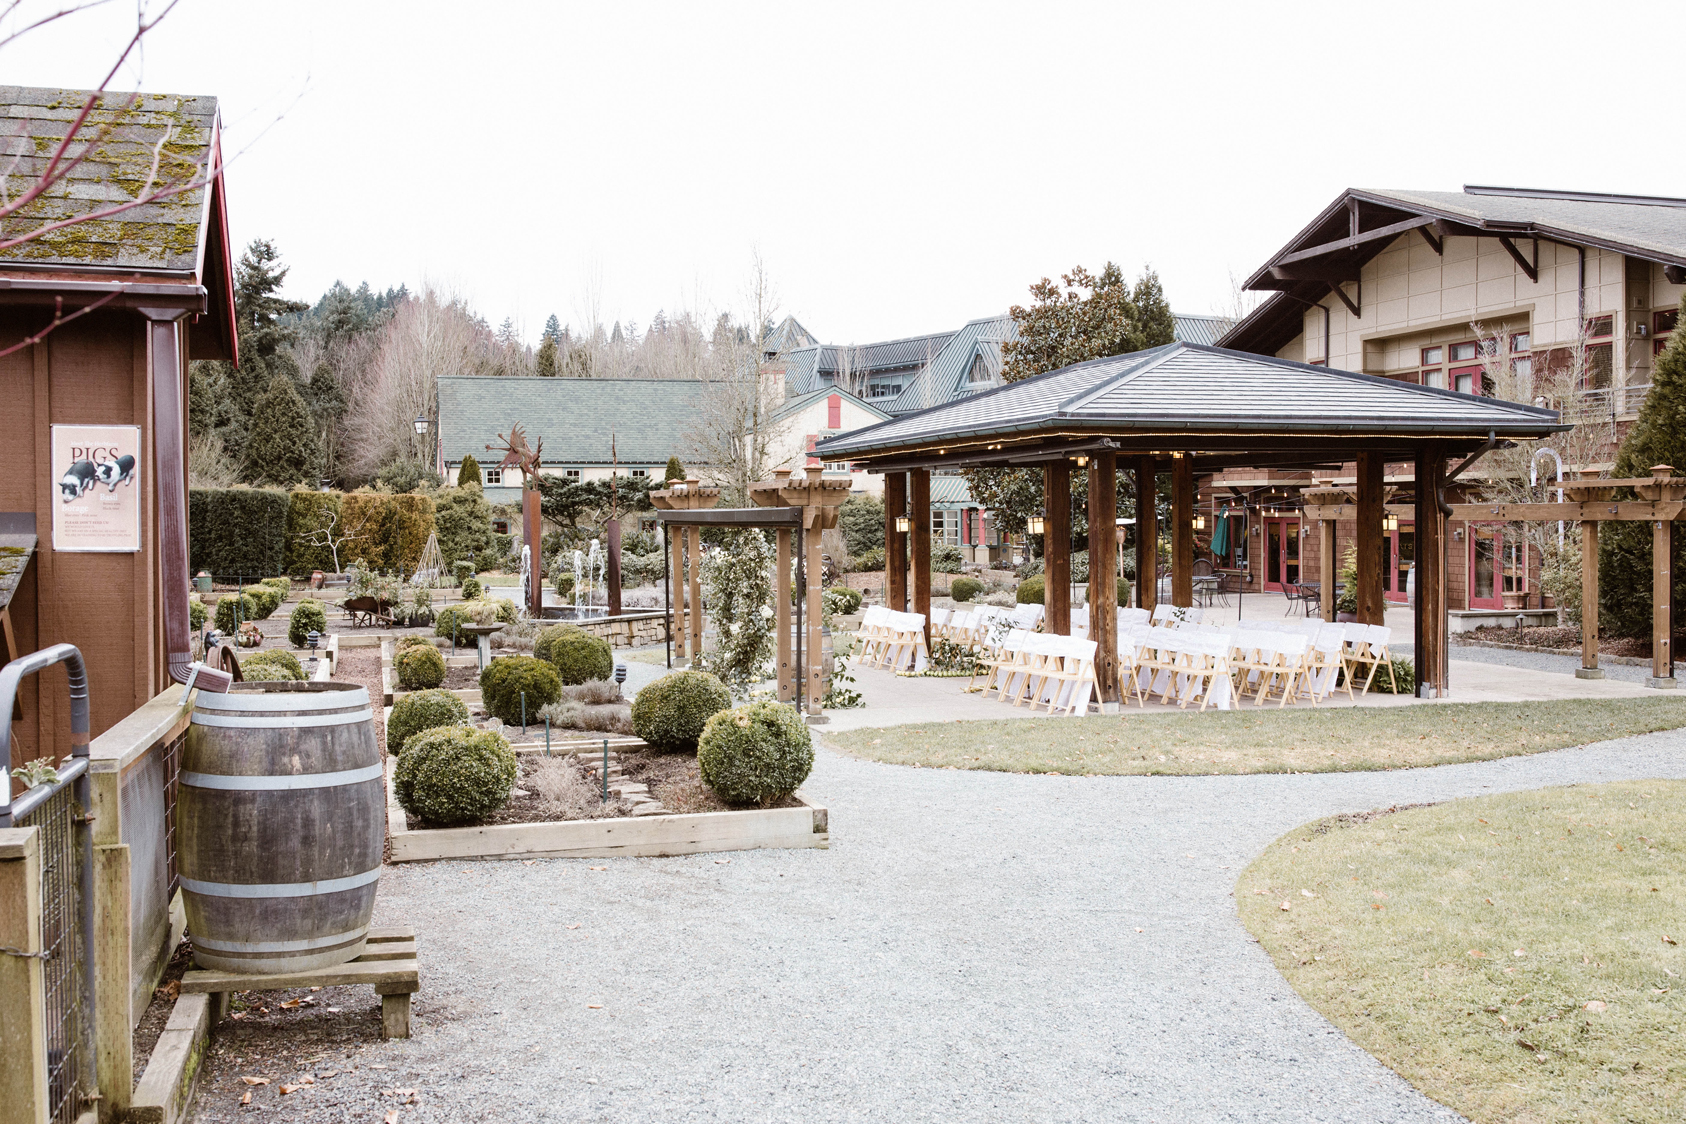 Willows+Lodge_Woodinville_2017_Weddings+In+Woodinville206.jpg